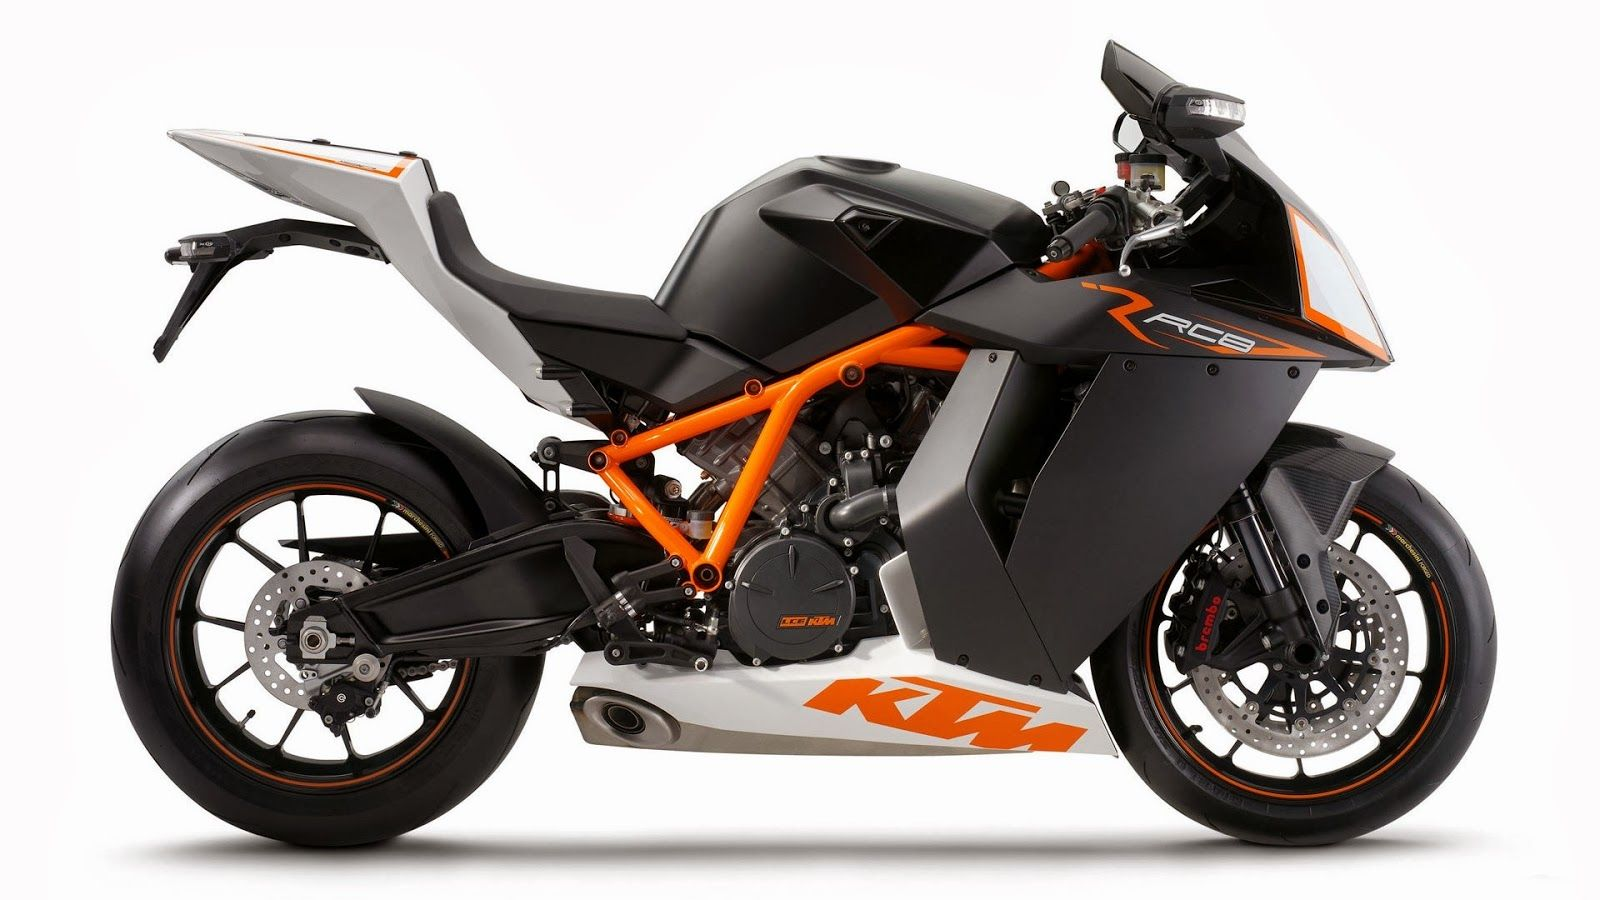 Ktm rc 390 customized google search